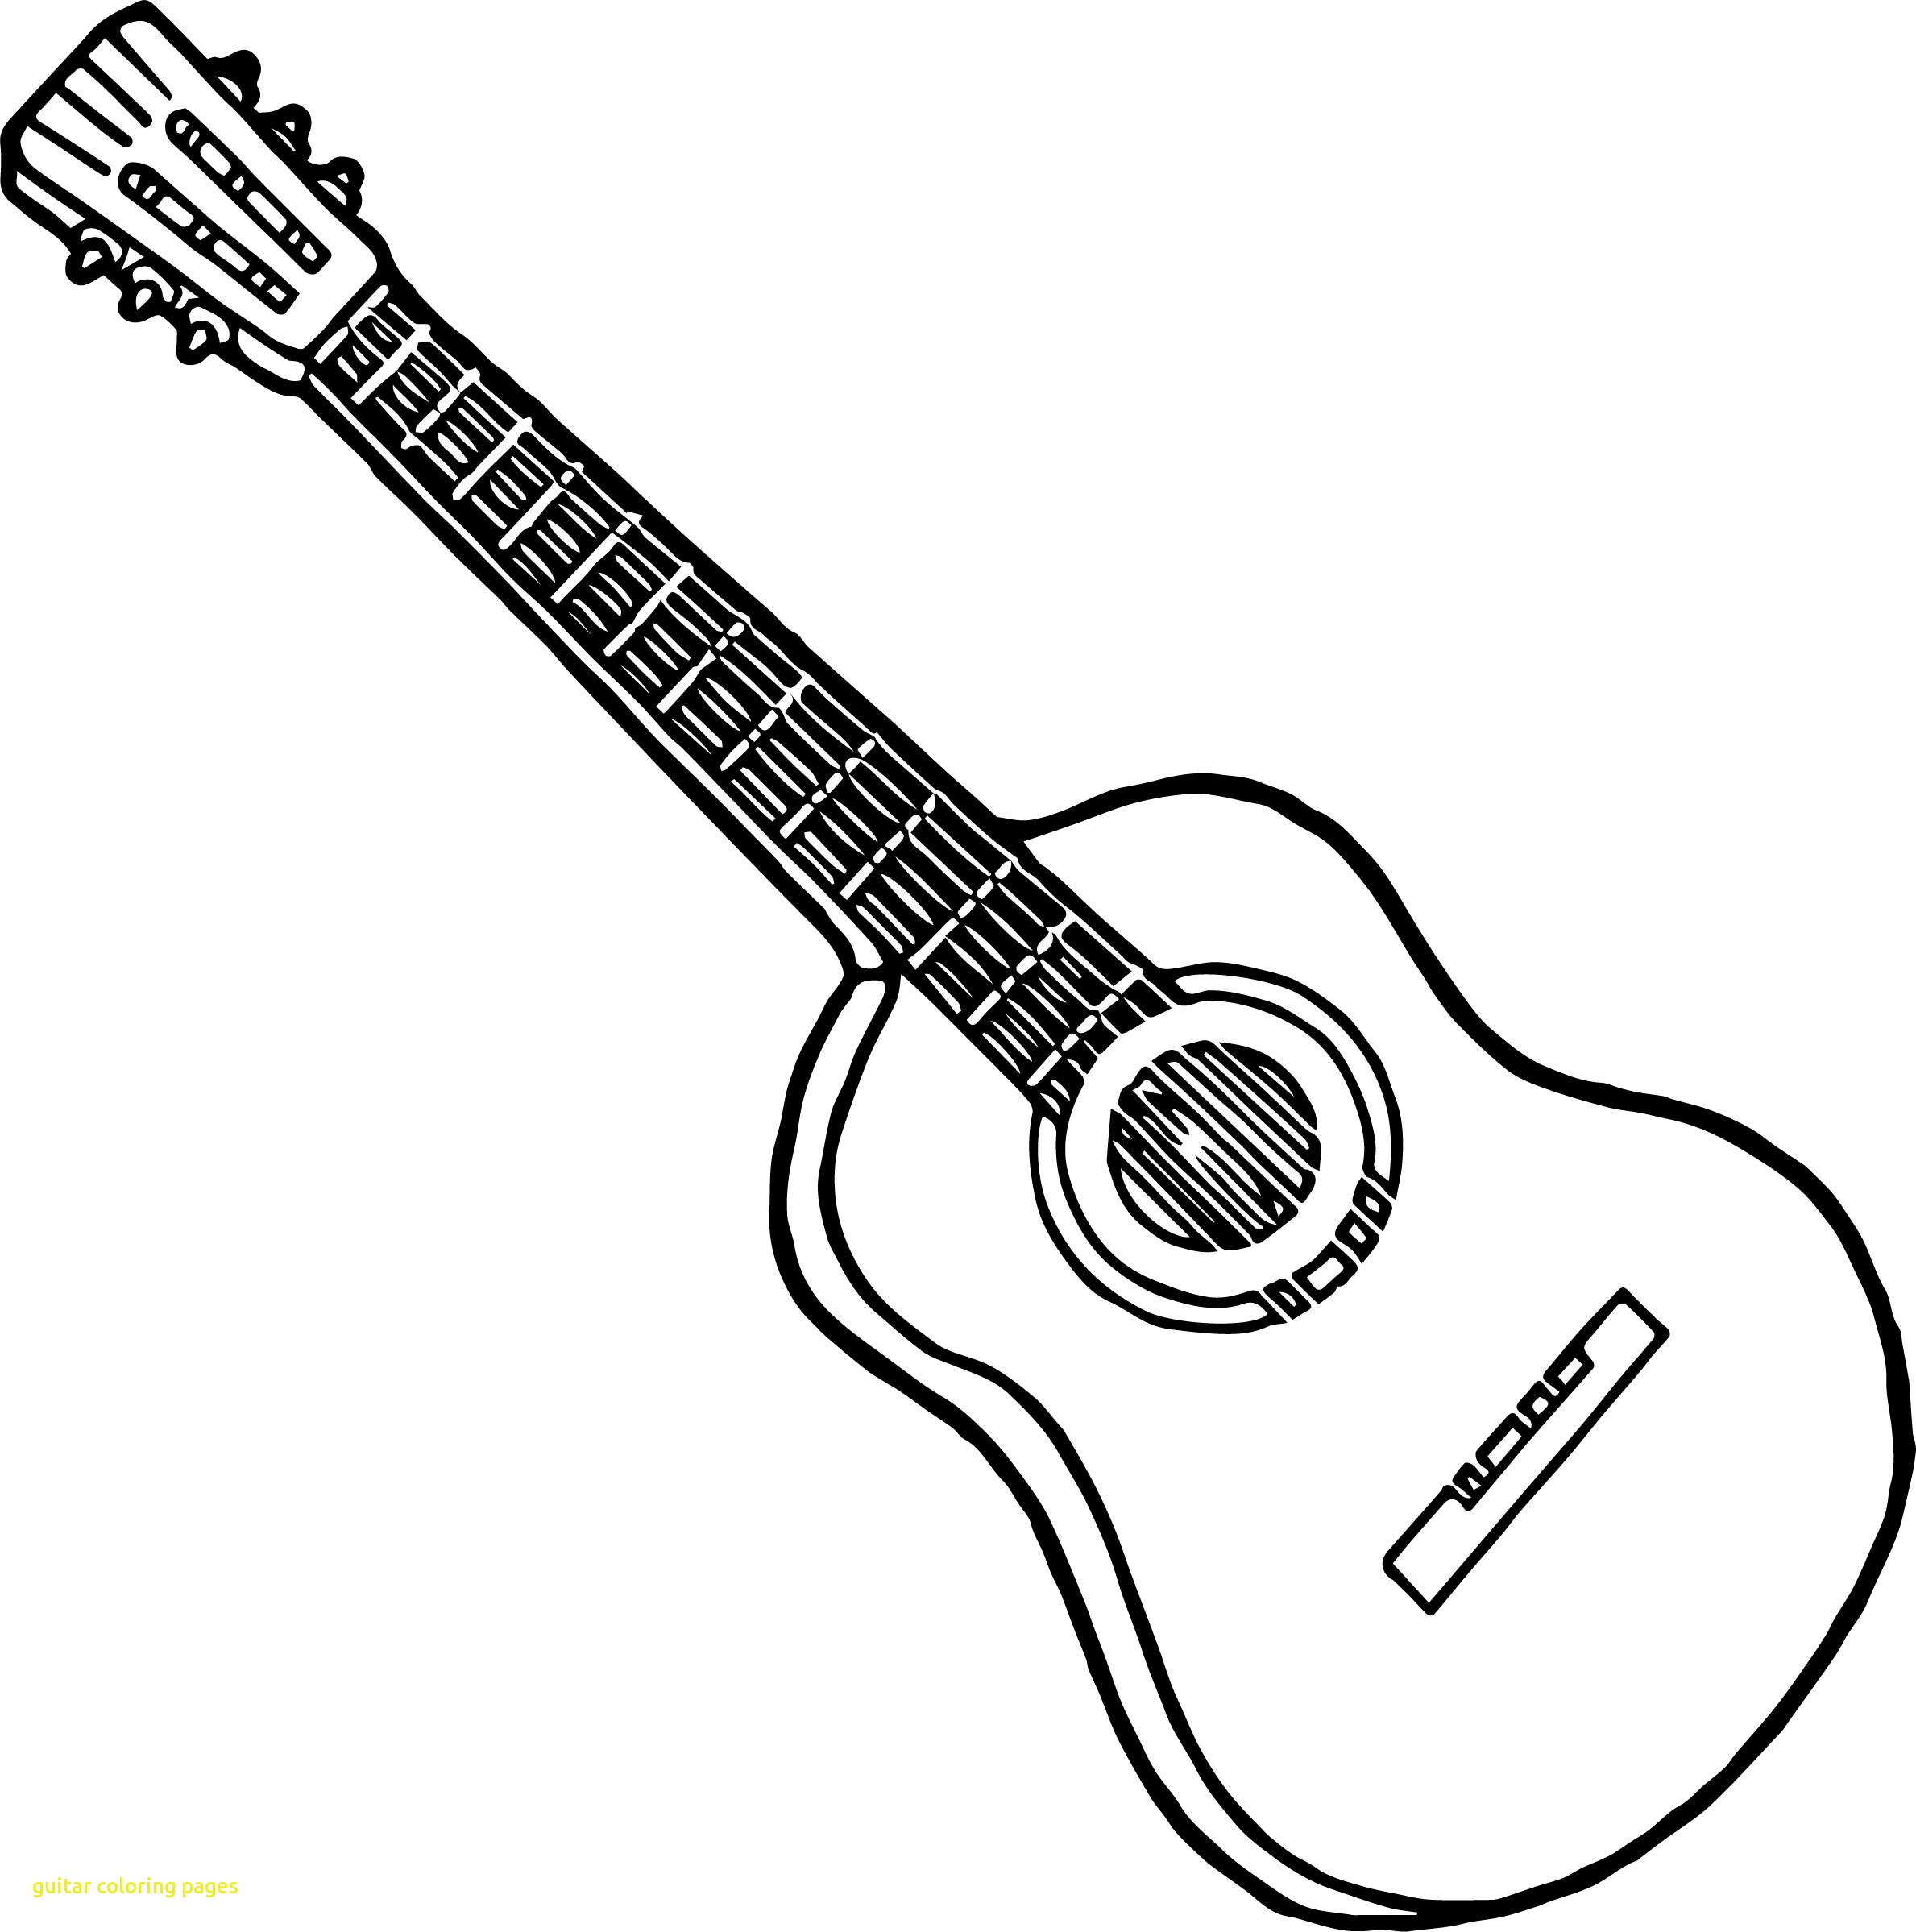 2378x2398 Mesmerizing Guitar Coloring Page Coloring In Humorous Guitar